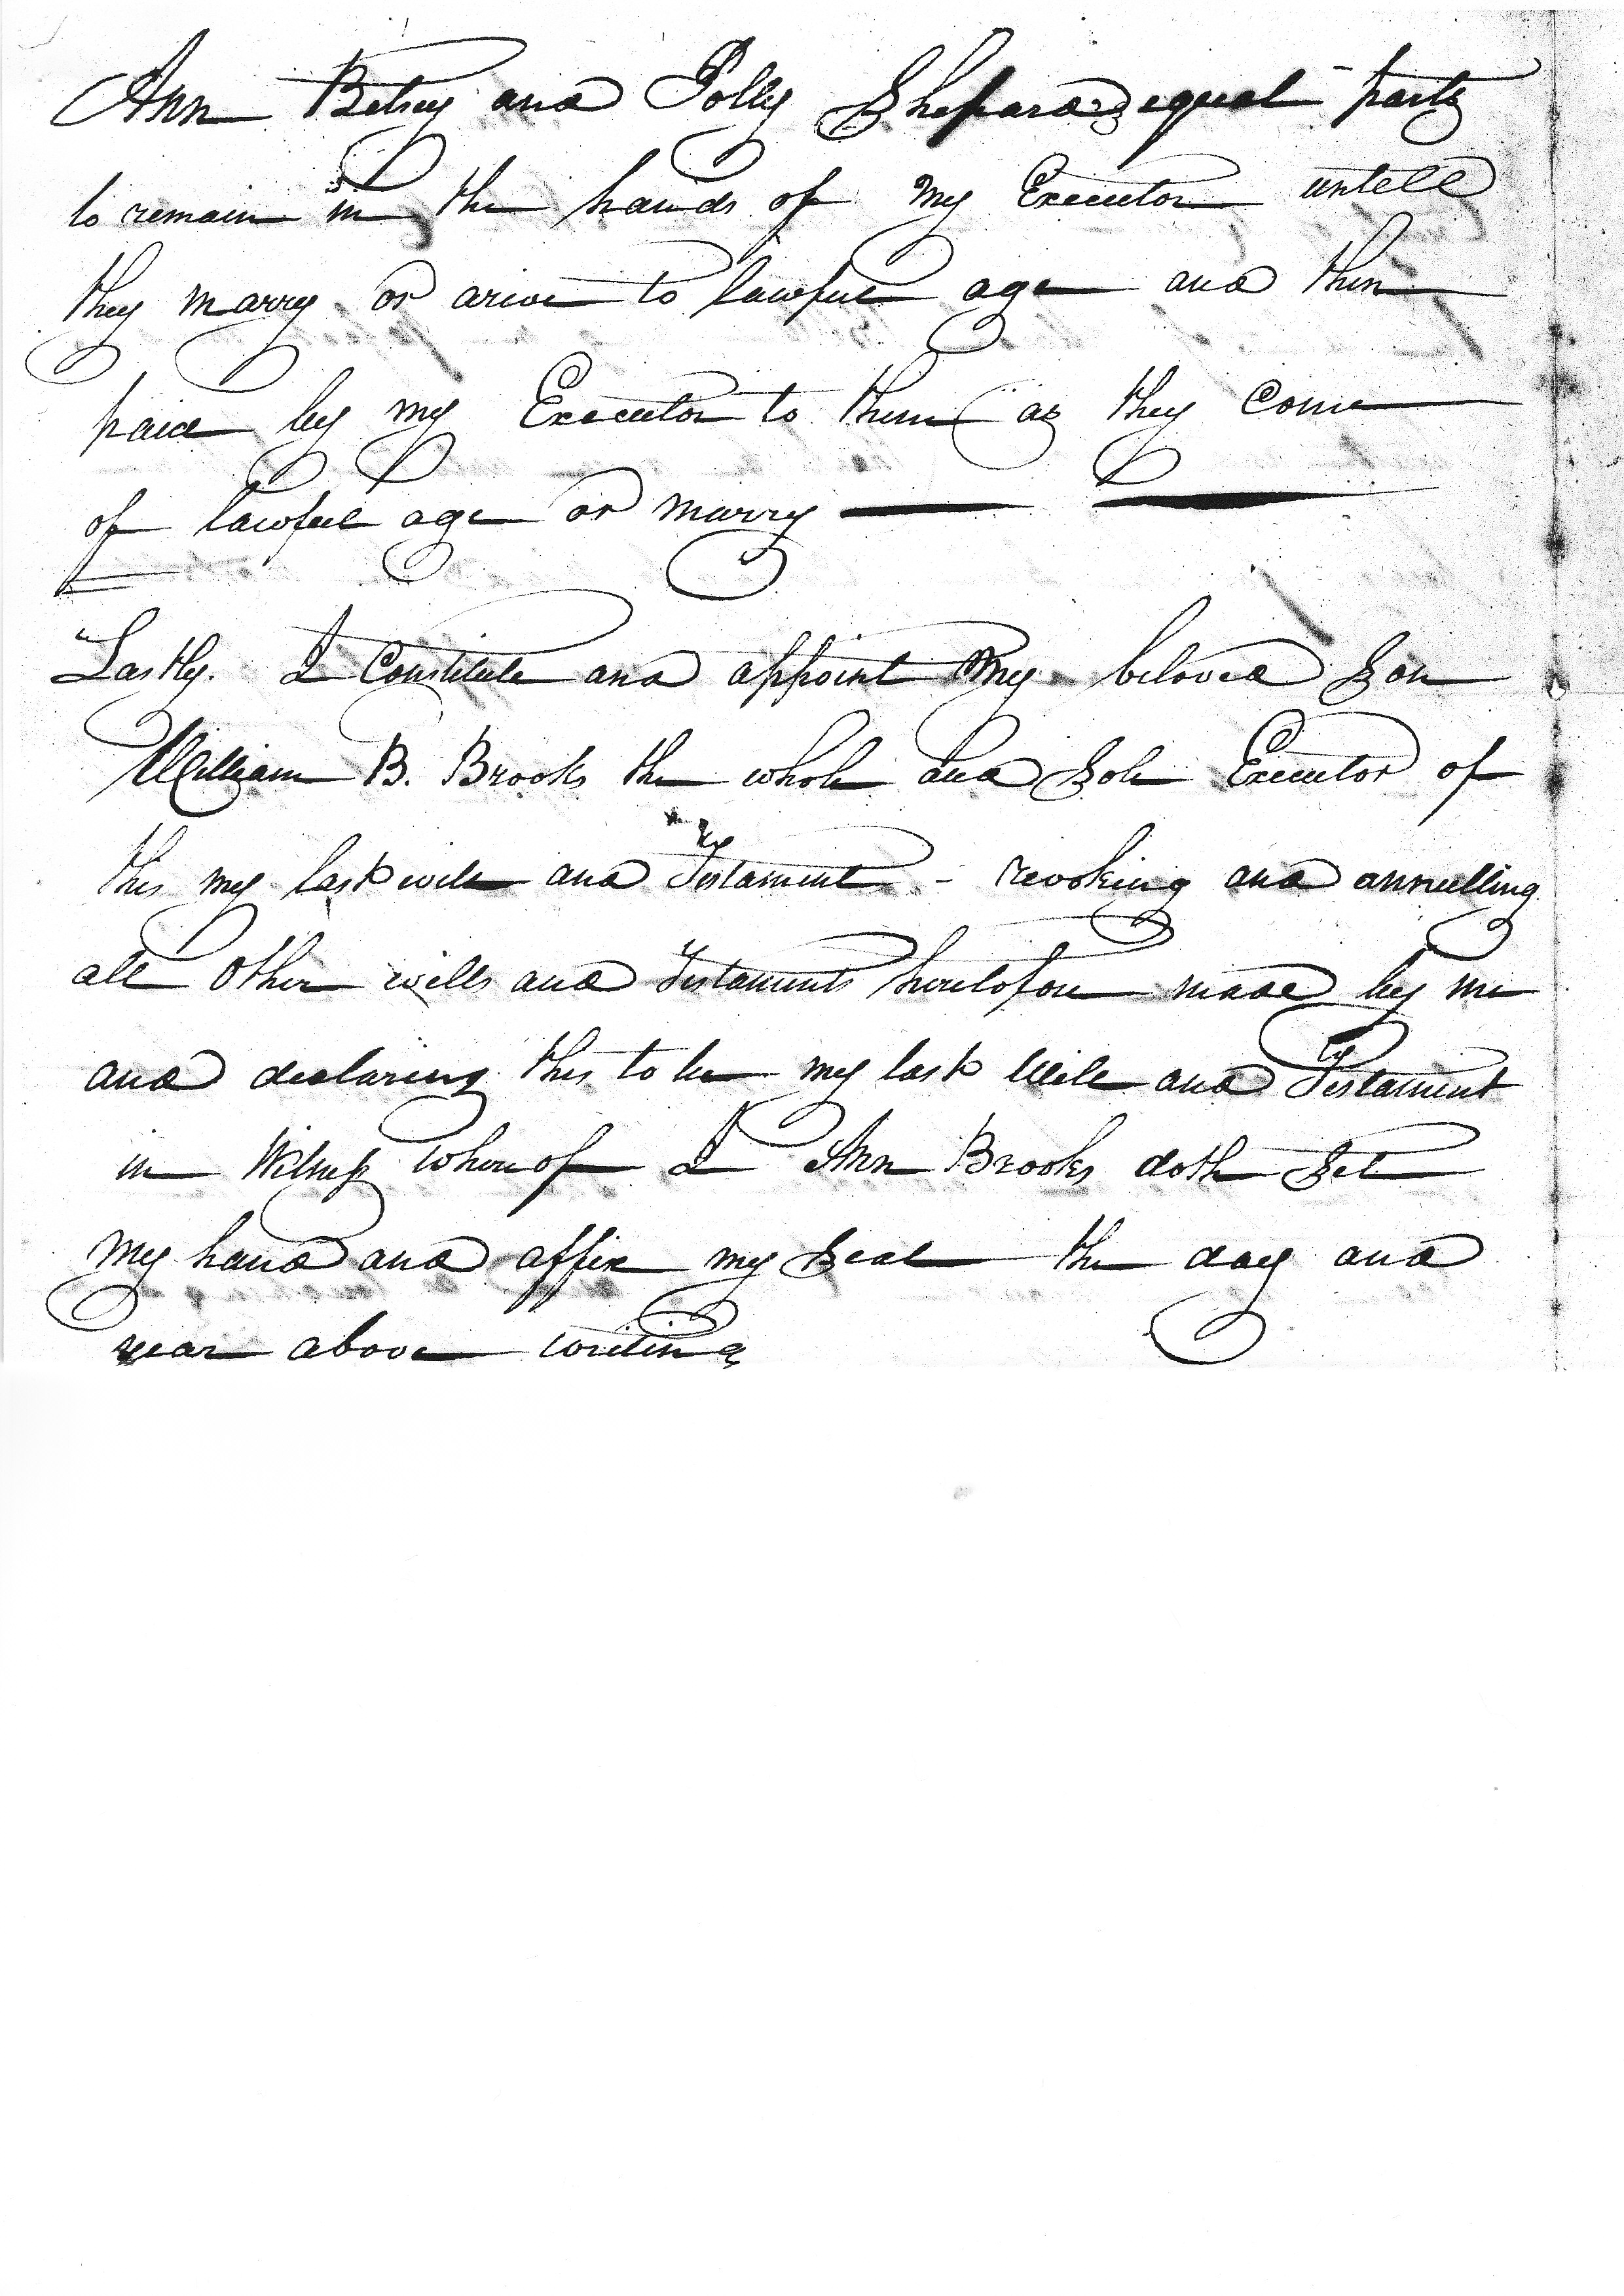 The Will Of Ann Brooks Caswell County North Carolina